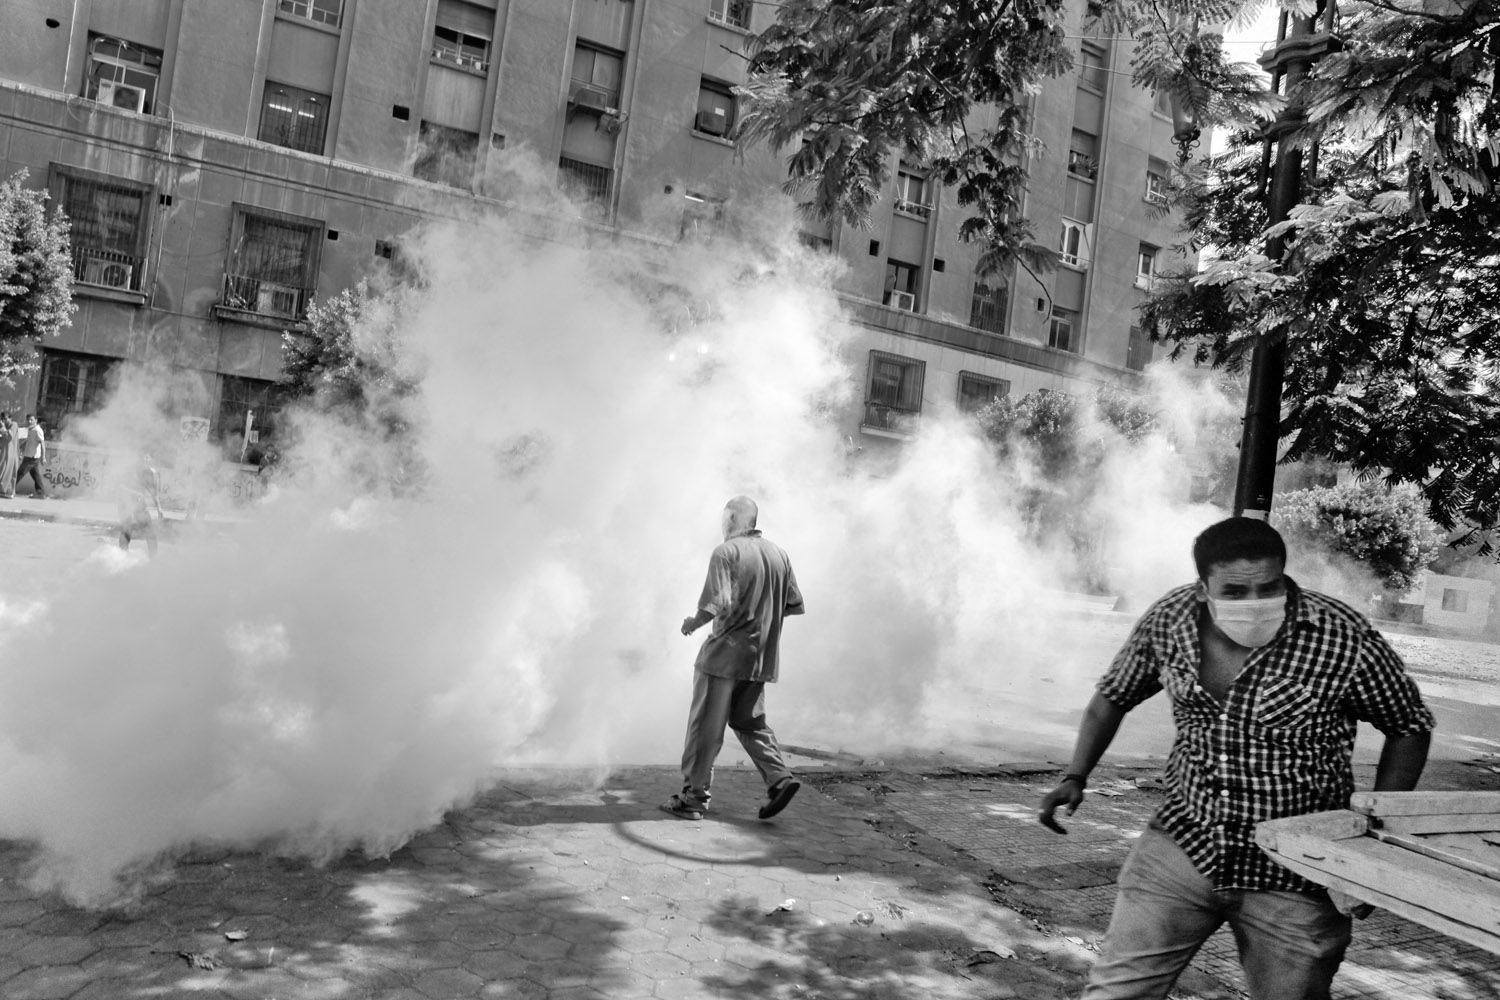 Protestors run away after a tear gas canister landed nearby.